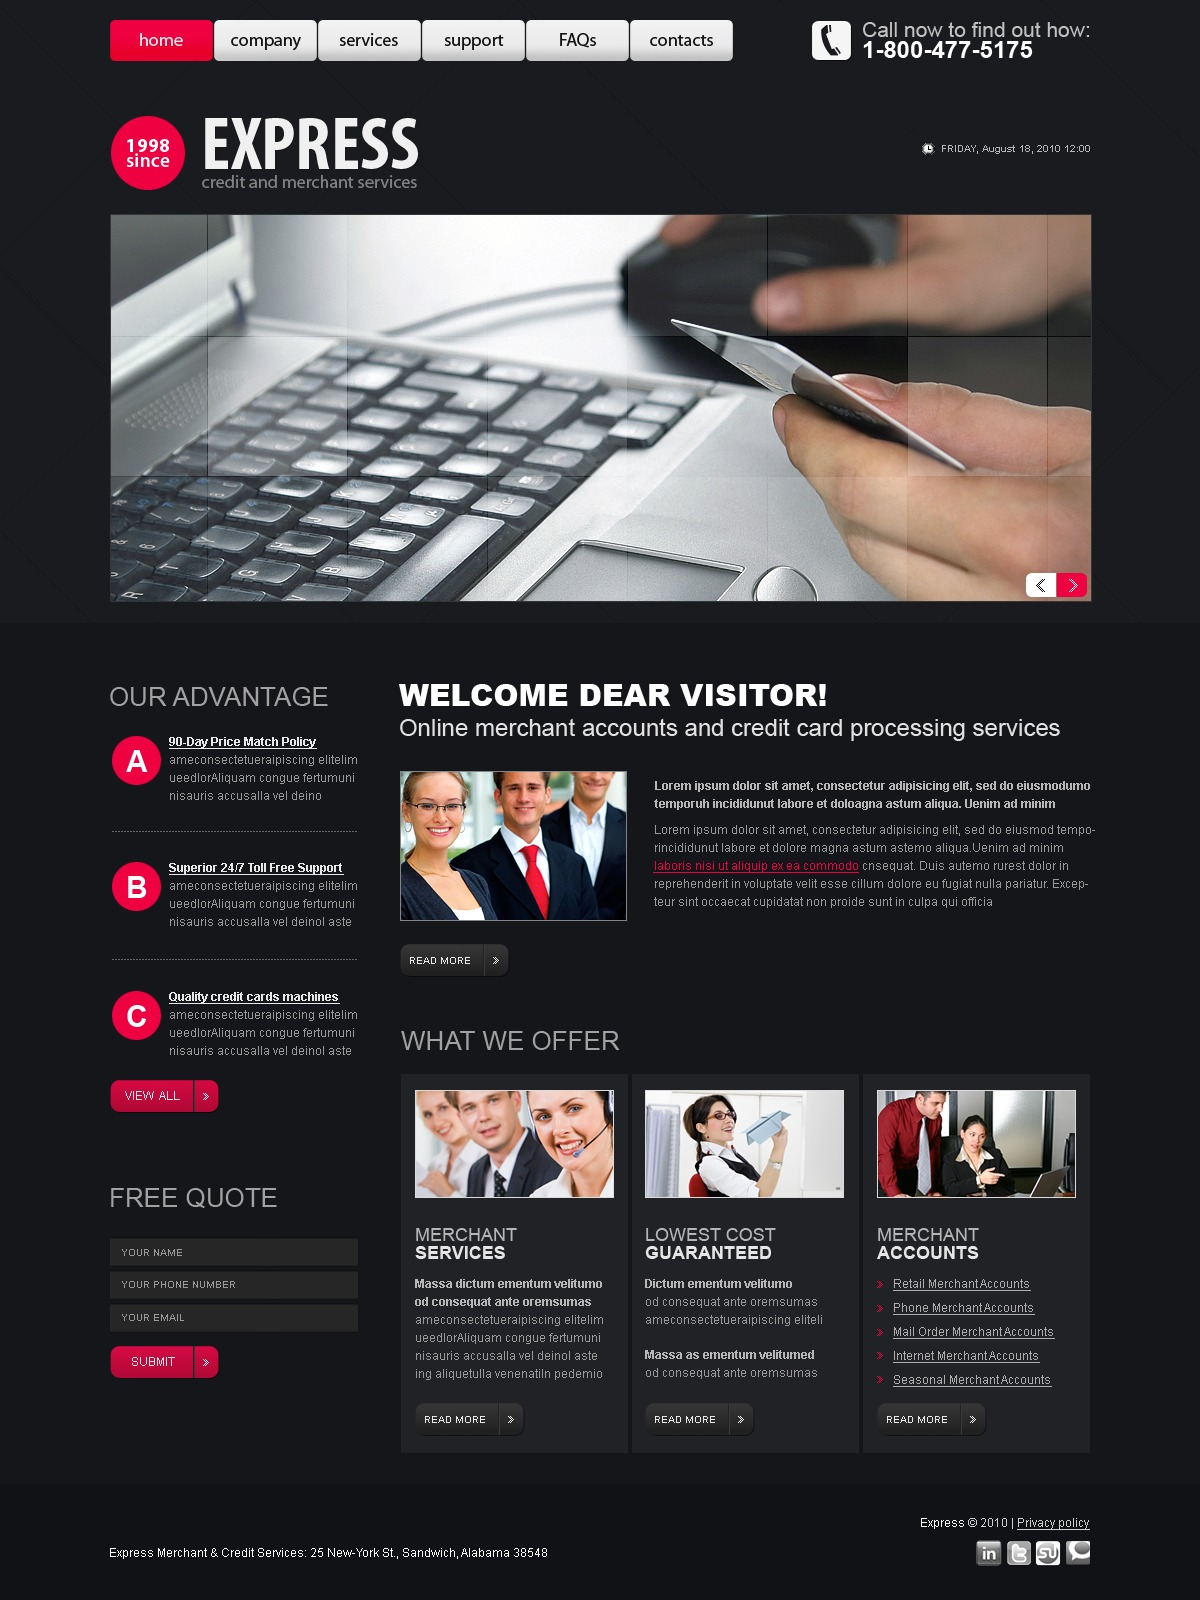 The Express Credit PSD Design 54470, one of the best PSD templates of its kind (business, flash 8, wide), also known as express credit PSD template, merchant PSD template, business company PSD template, corporate solutions PSD template, innovations PSD template, contacts PSD template, service PSD template, support PSD template, information dealer PSD template, stocks PSD template, team PSD template, success PSD template, money PSD template, marketing PSD template, director PSD template, manager PSD template, analytics PSD template, planning PSD template, limited PSD template, office PSD template, sales and related with express credit, merchant, business company, corporate solutions, innovations, contacts, service, support, information dealer, stocks, team, success, money, marketing, director, manager, analytics, planning, limited, office, sales, etc.